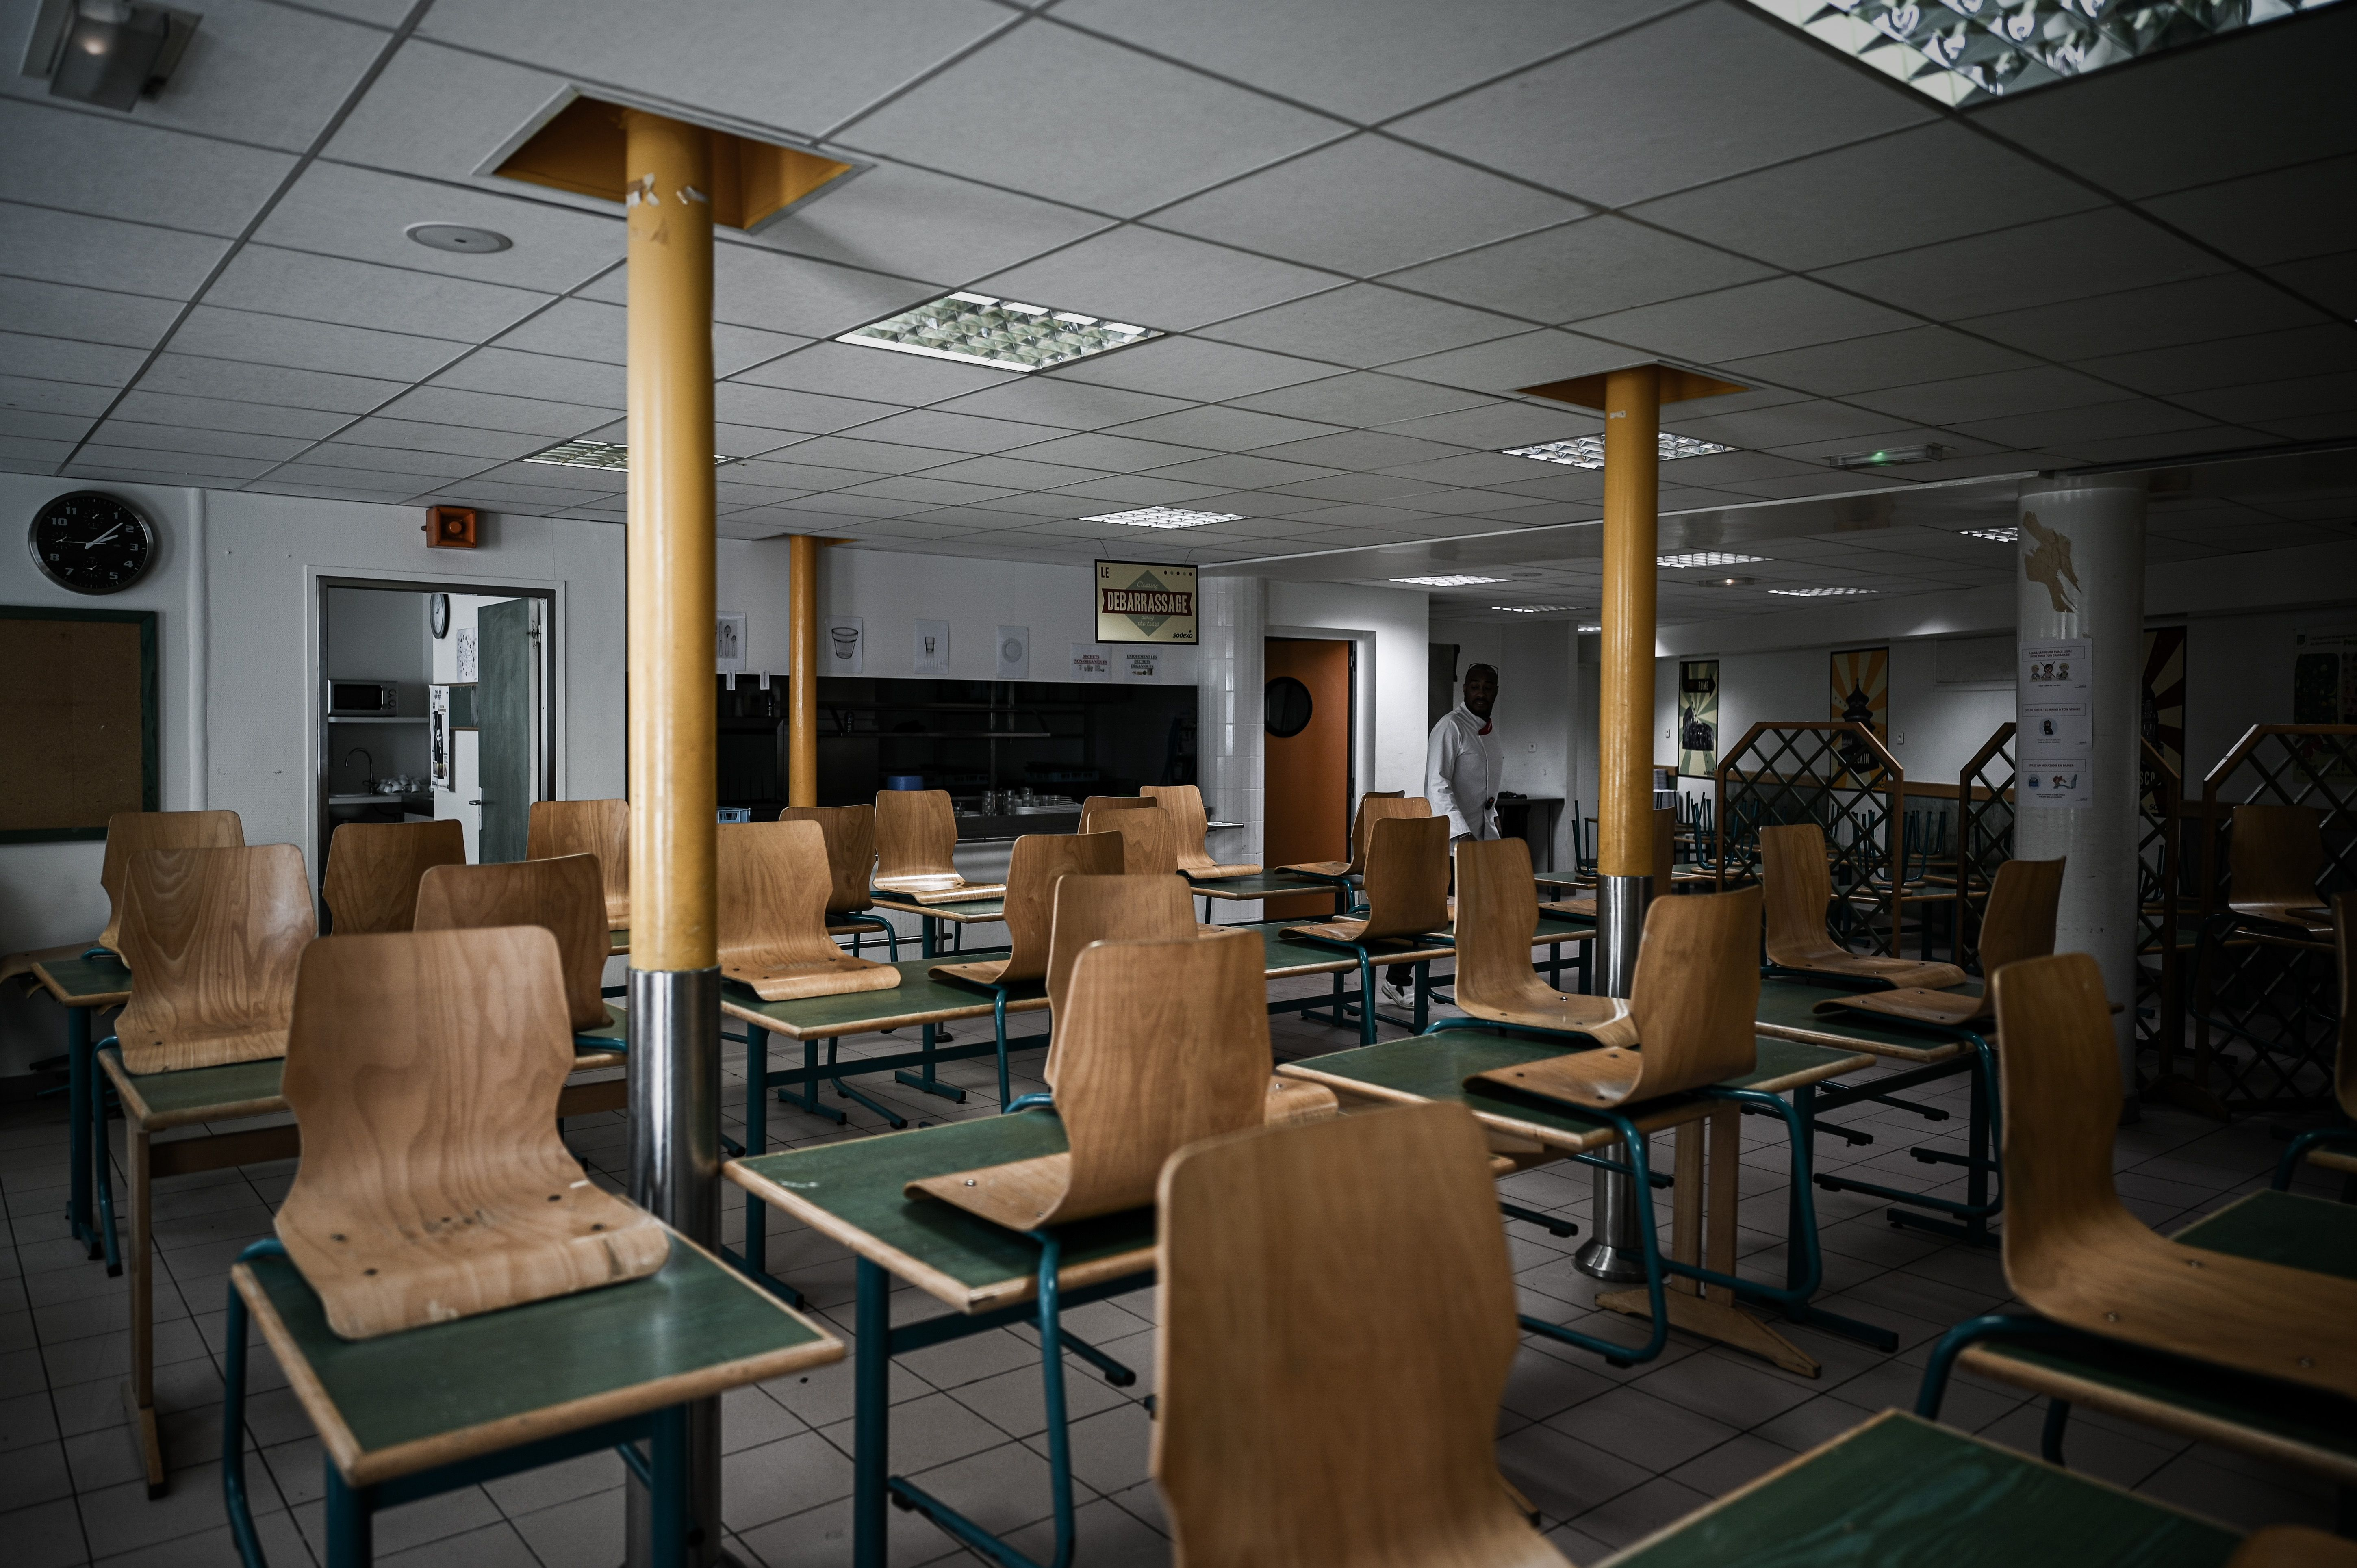 A staff member walks in the canteen of the private school Institut Sainte Genevieve prepared to respecting the social distance with only two children per table, in the French capital Paris on May 7, 2020, as the schools in France are to gradually reopen from May 11, when a partial lifting of restrictions due to the Covid-19 pandemic caused by the novel coronavirus will come into effect. (Photo by PHILIPPE LOPEZ / AFP) (Photo by PHILIPPE LOPEZ/AFP via Getty Images)